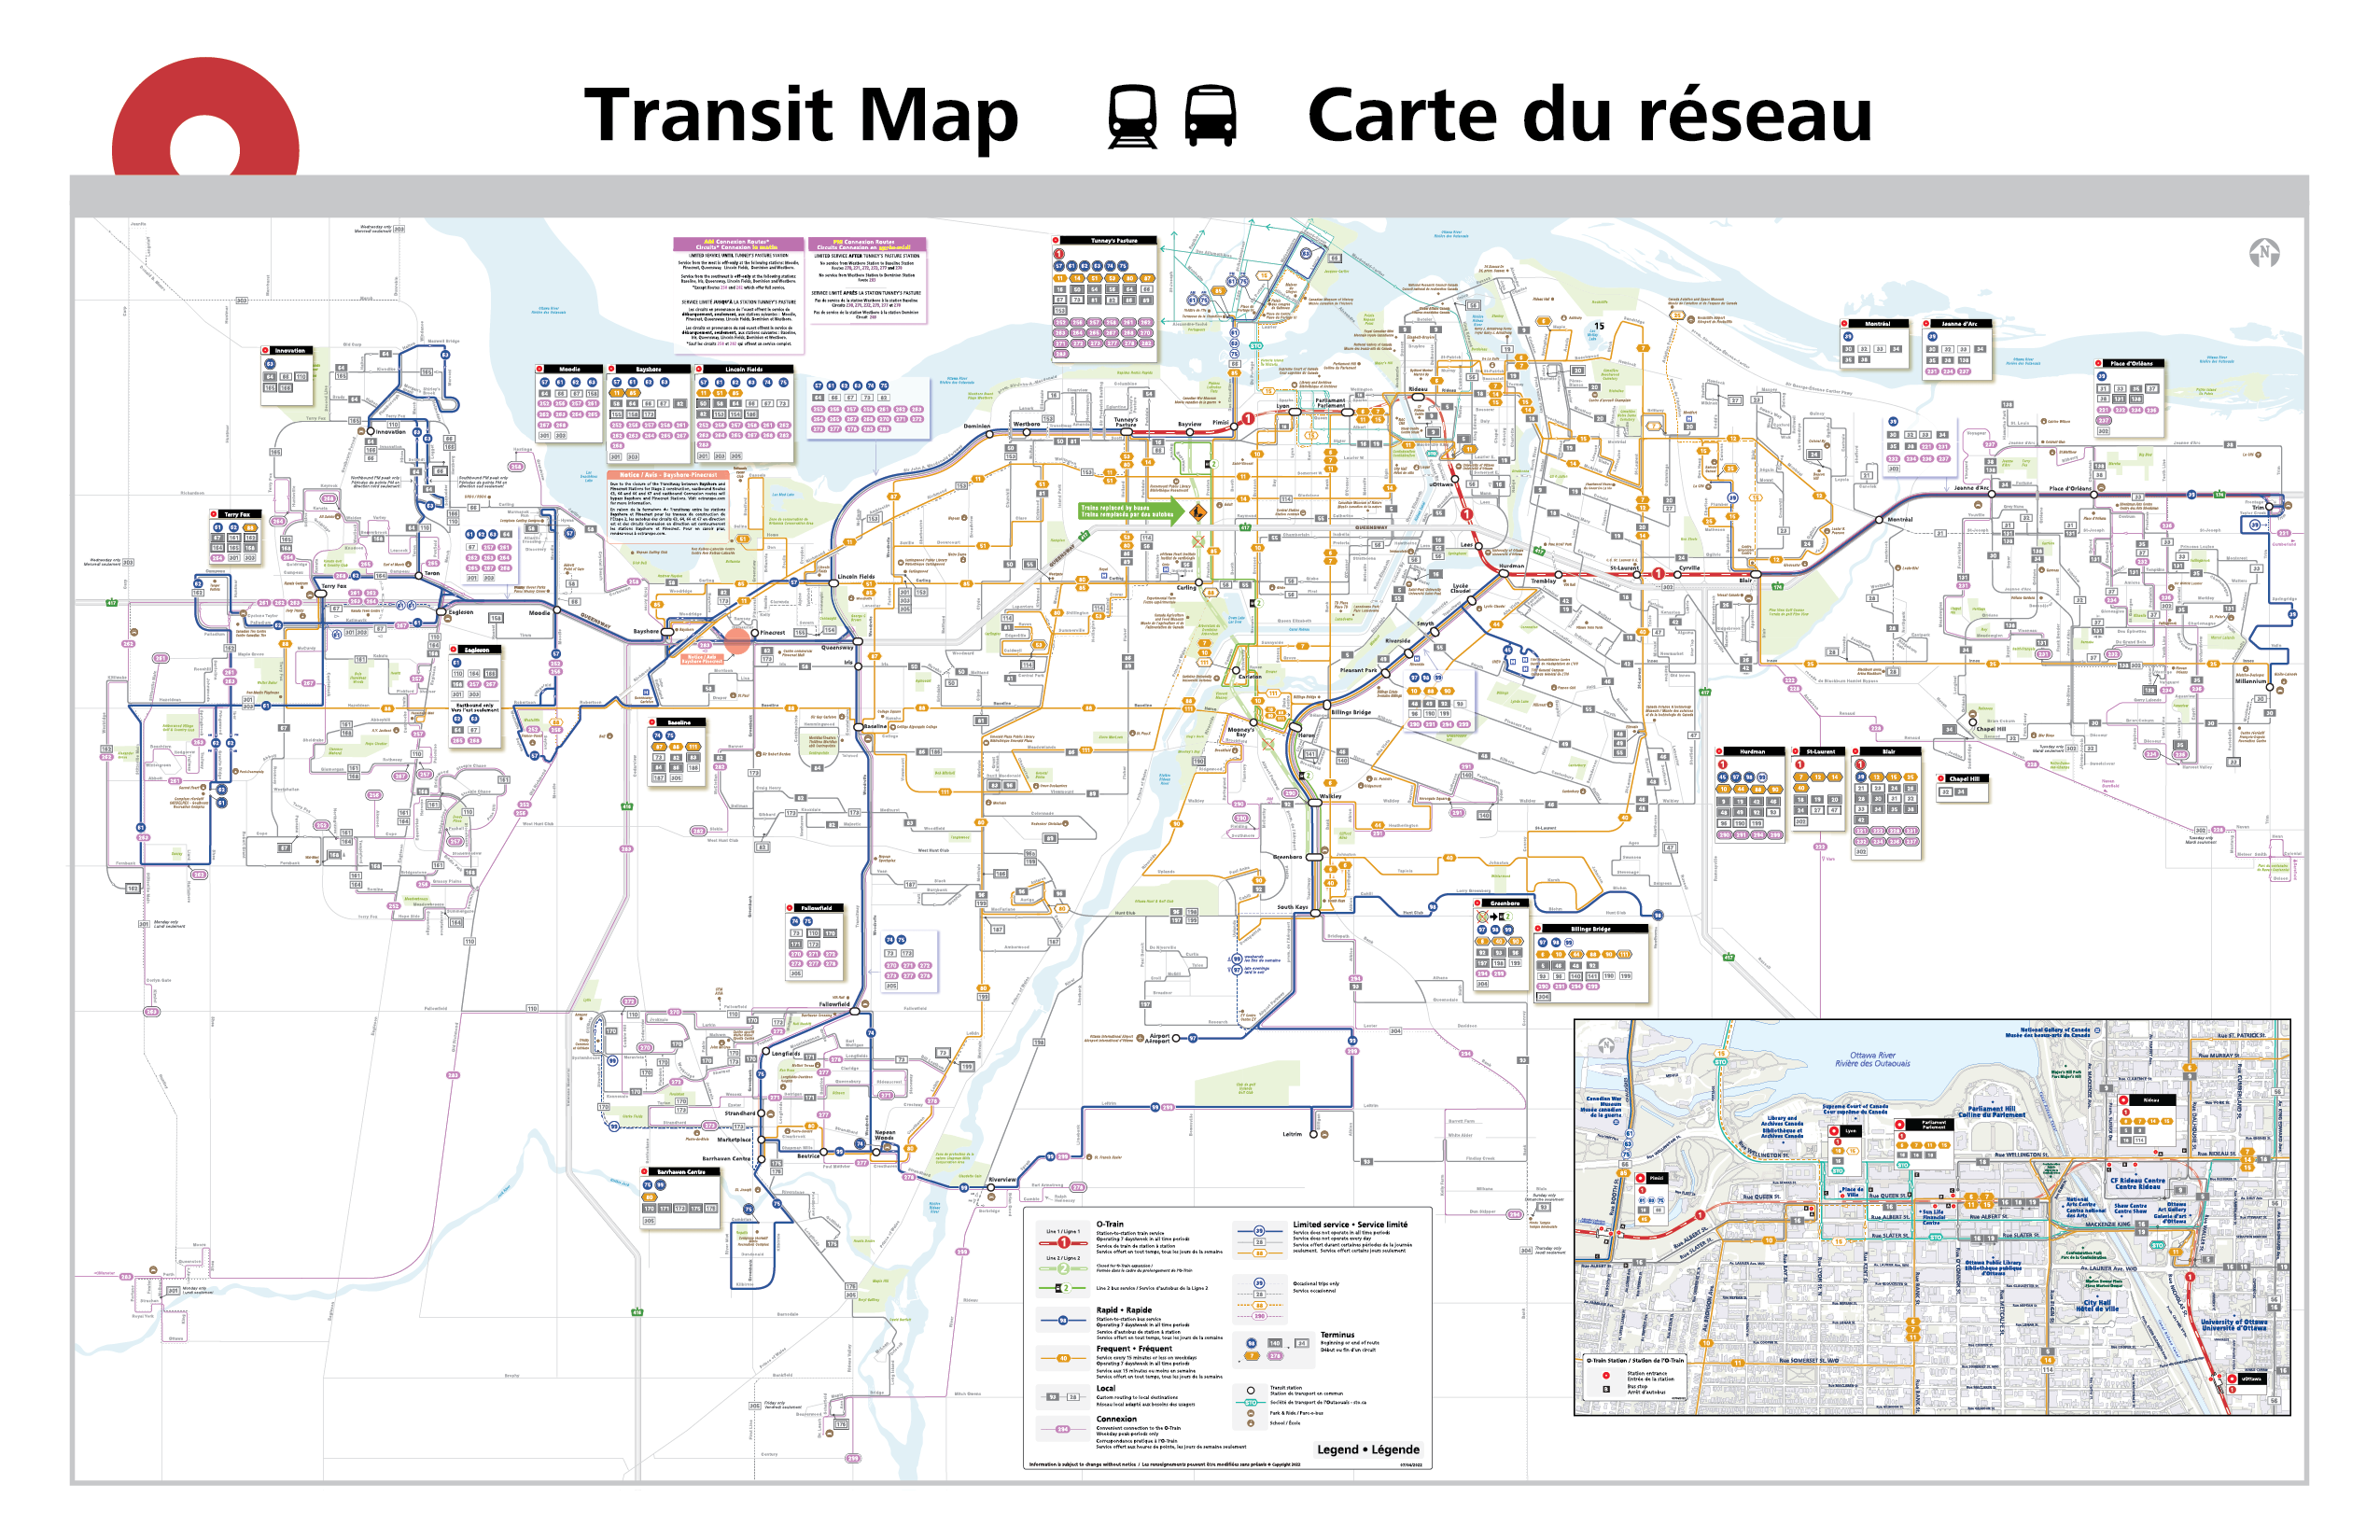 OC Transpo network map